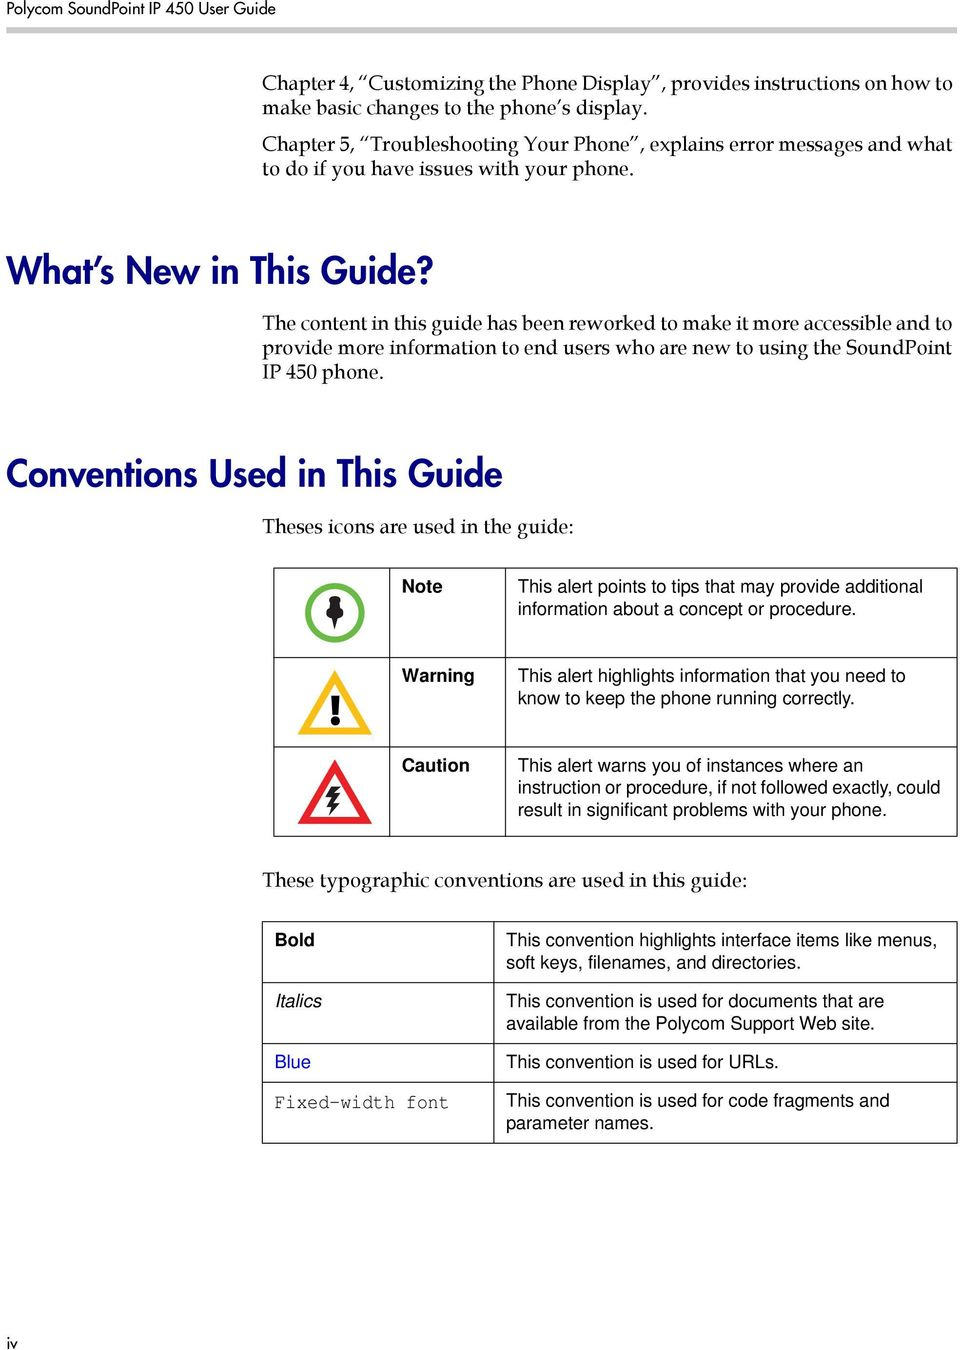 The content in this guide has been reworked to make it more accessible and  to provide